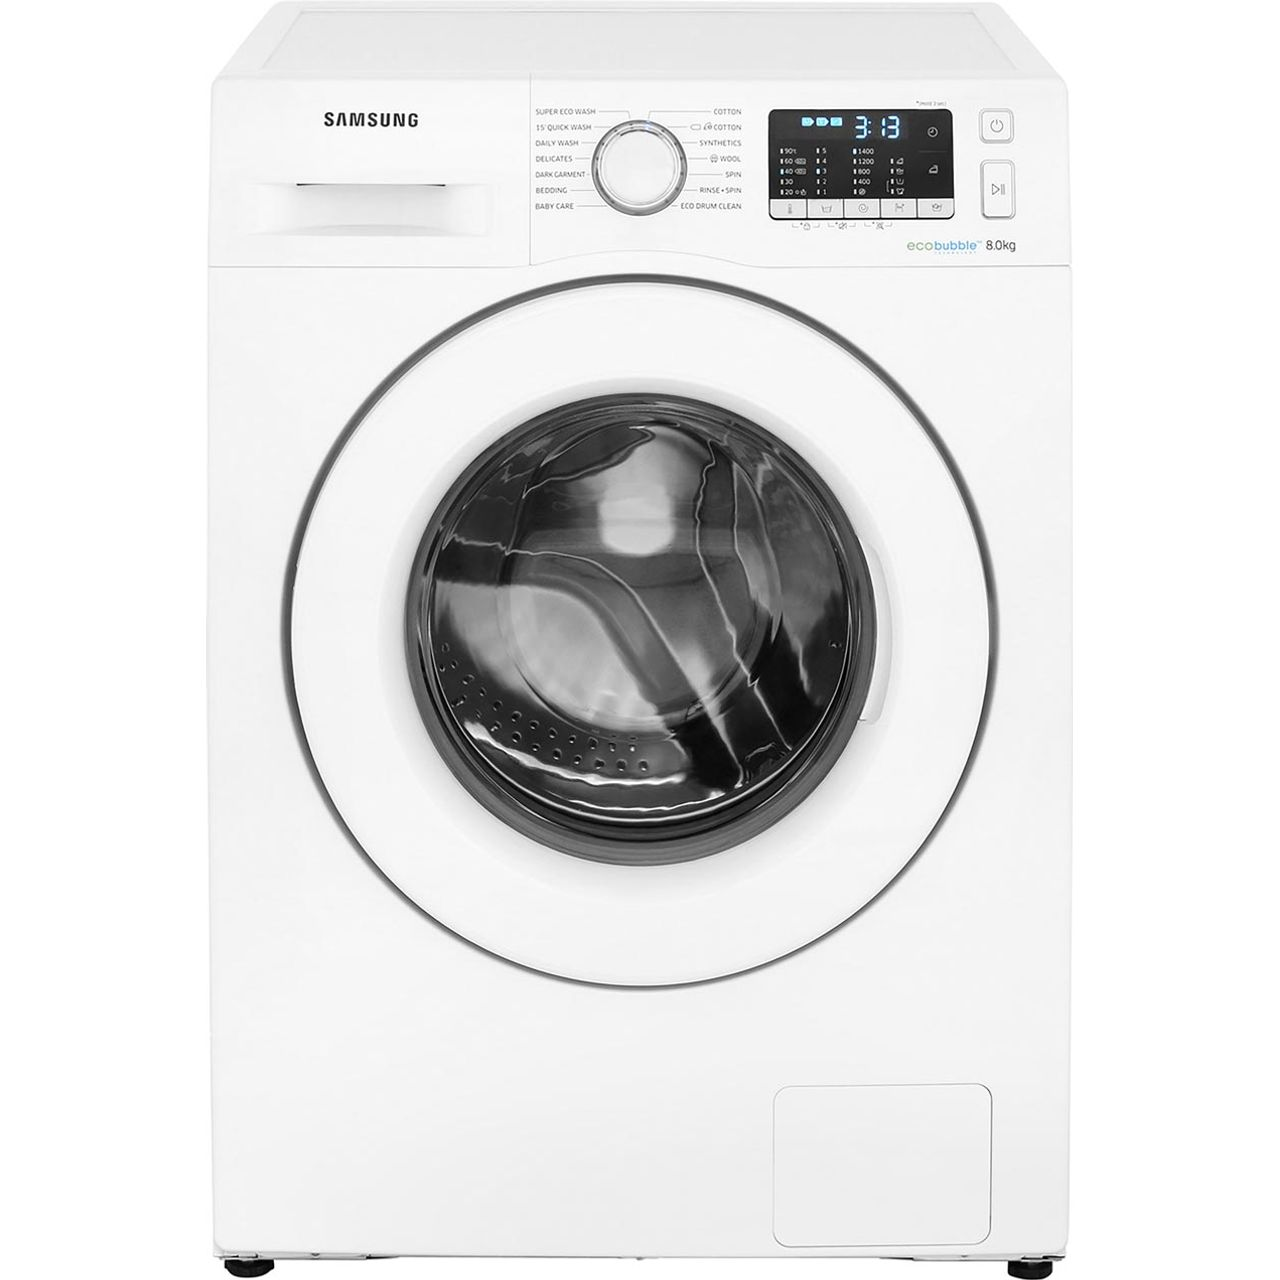 Samsung ecobubble™ WW80J5555MW 8Kg Washing Machine with 1400 rpm - White -  A+++ Rated